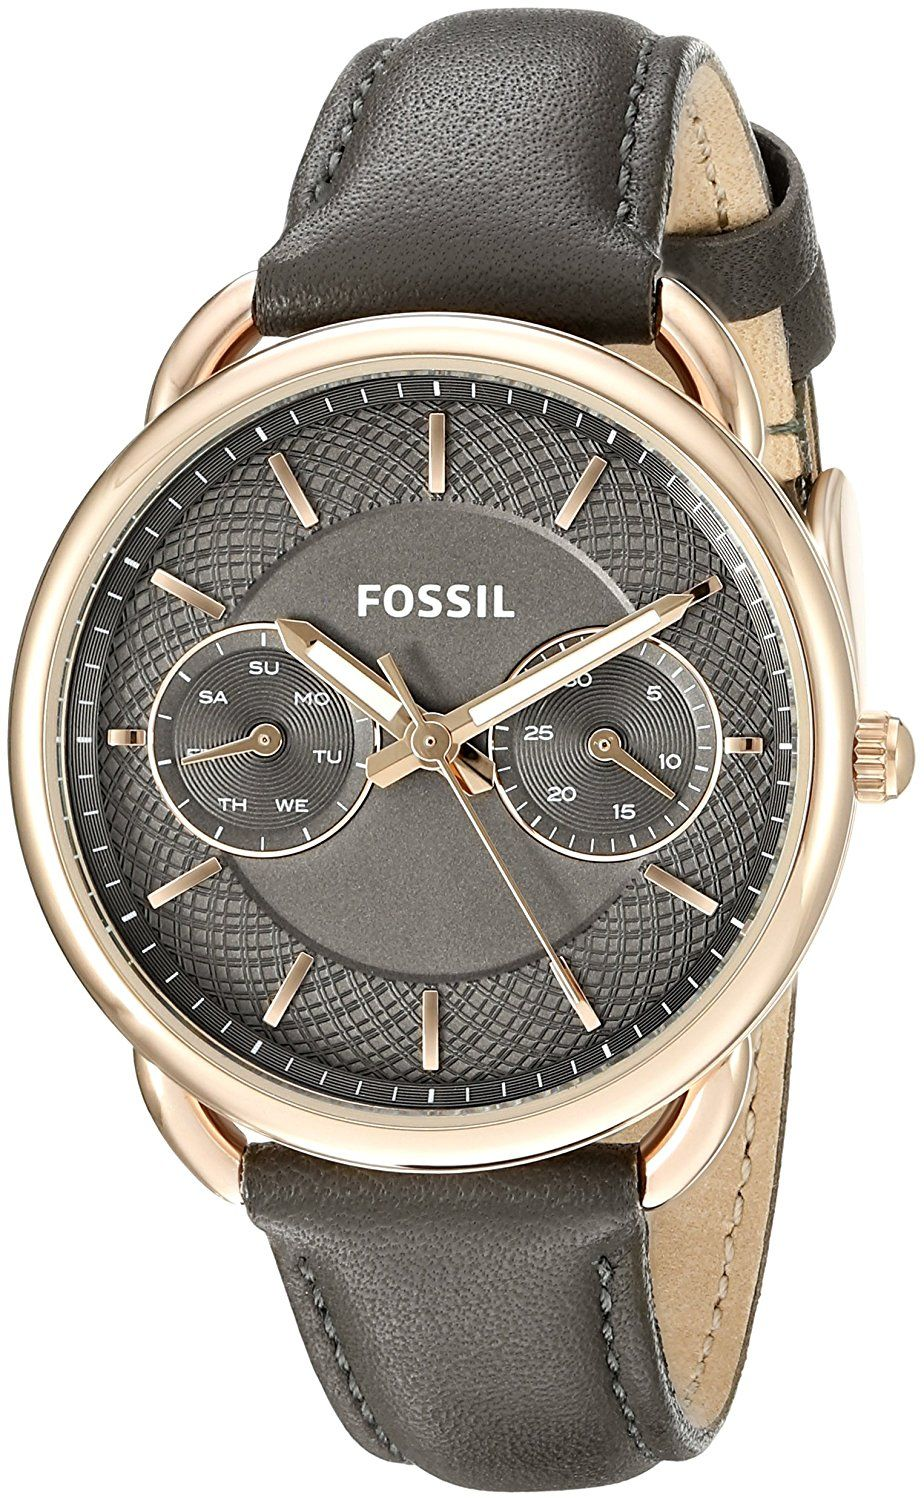 Fossil Tailor Multifunction Leather Gotteamdesigns Es3954 Light Brown Watch You Can Find Out More Details At The Link